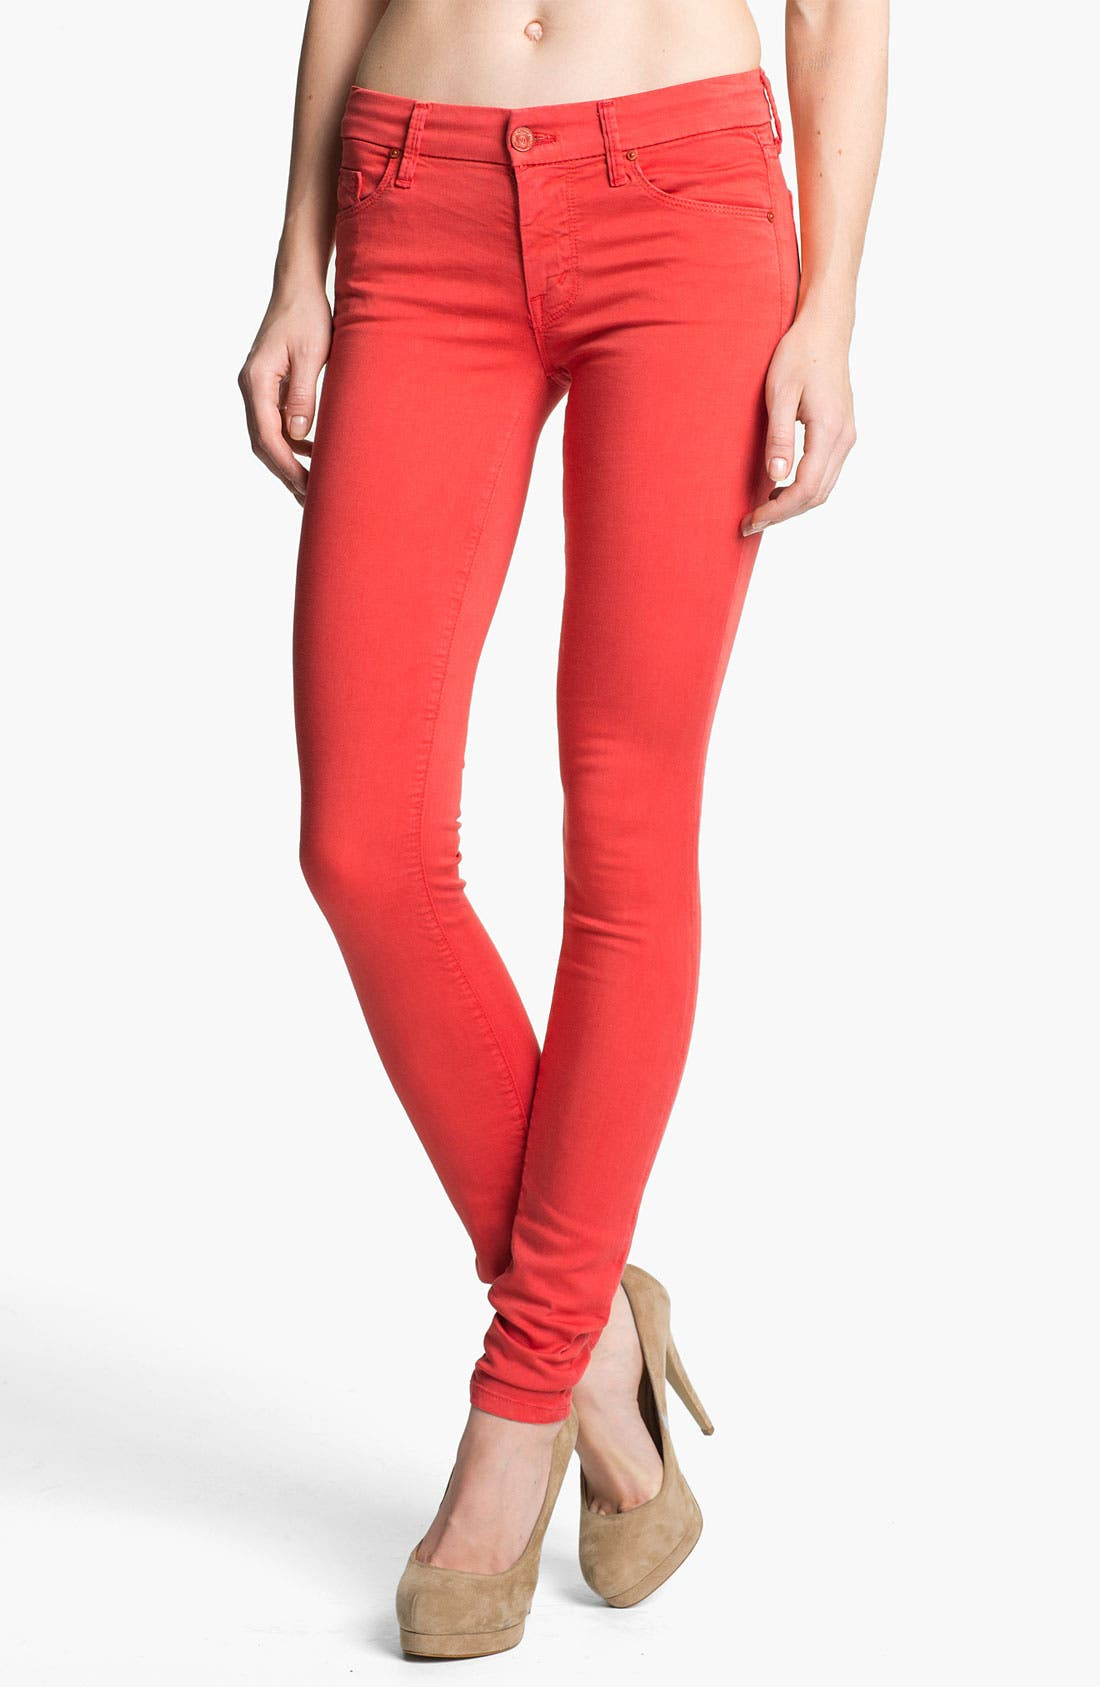 Alternate Image 1 Selected - MOTHER 'The Looker' Skinny Stretch Jeans (Rambutan Red)